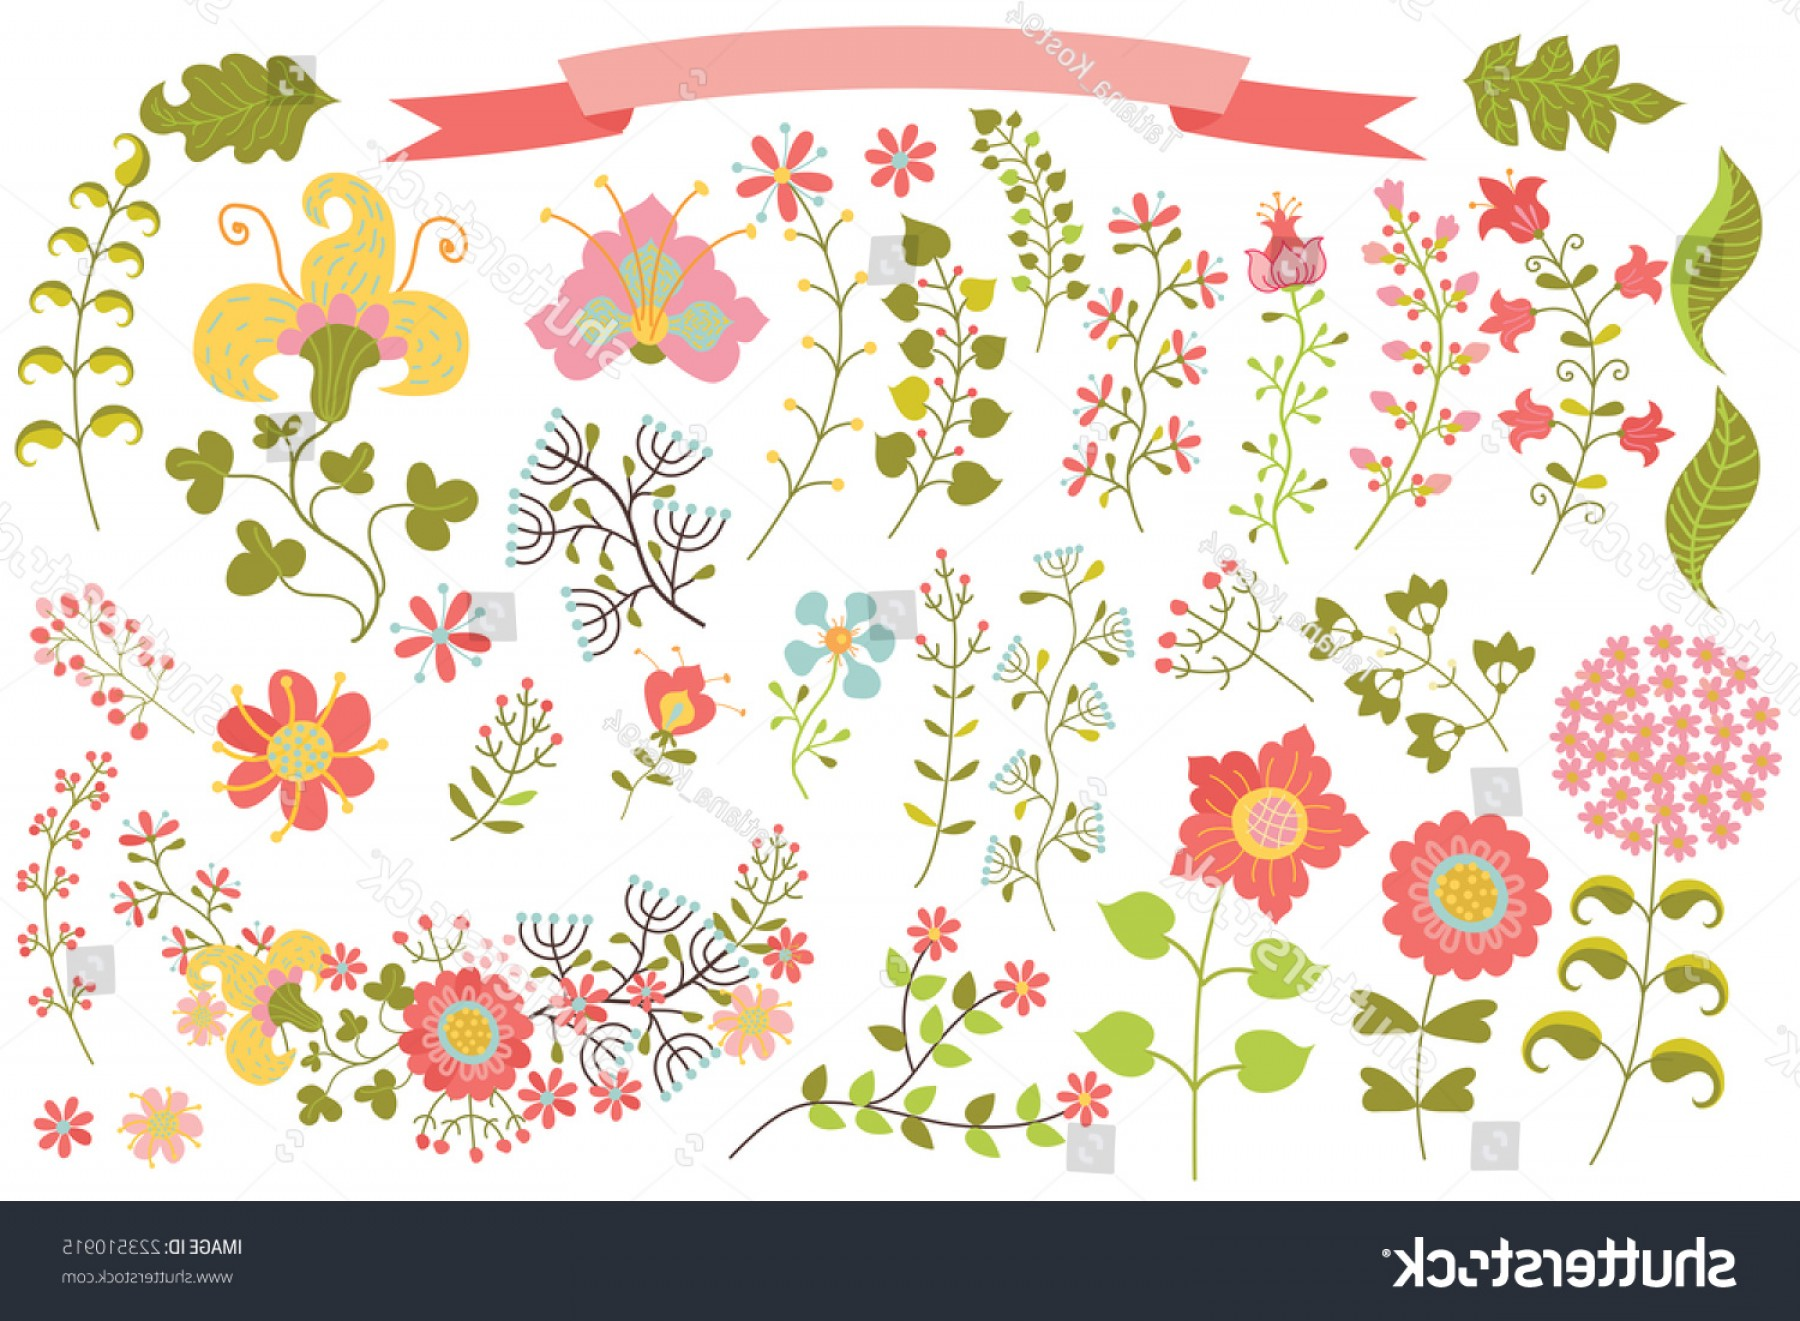 Cute Design Elements Vector Set: Cute Set Floral Stylized Elements Vector